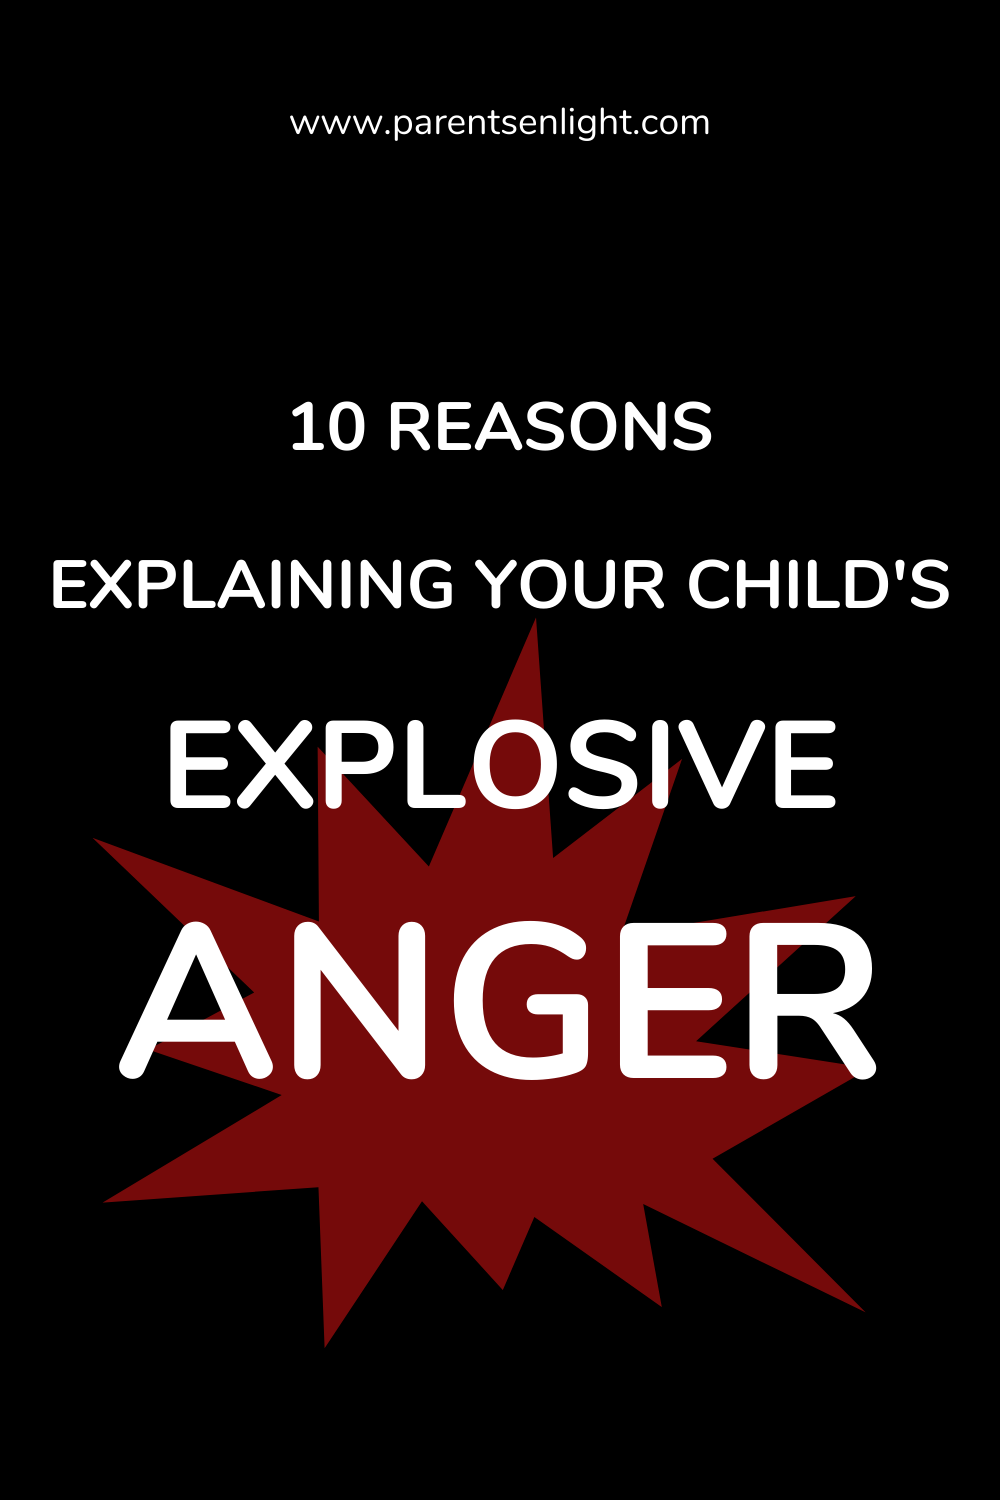 If you're searching for anger management tools to help your child cope with anger, you're not in the right place. Anger cannot be dealt with or processed without addressing the underlying reason for it. Here you'll find the 10 most common reason's for children's anger, and ways to cope #angermanagementforchildren #angrychild #whyismychildsoangry #children'smentalhealth #helpingchildrencopewithanger #mindfulparenting #positiveparenting #parenting